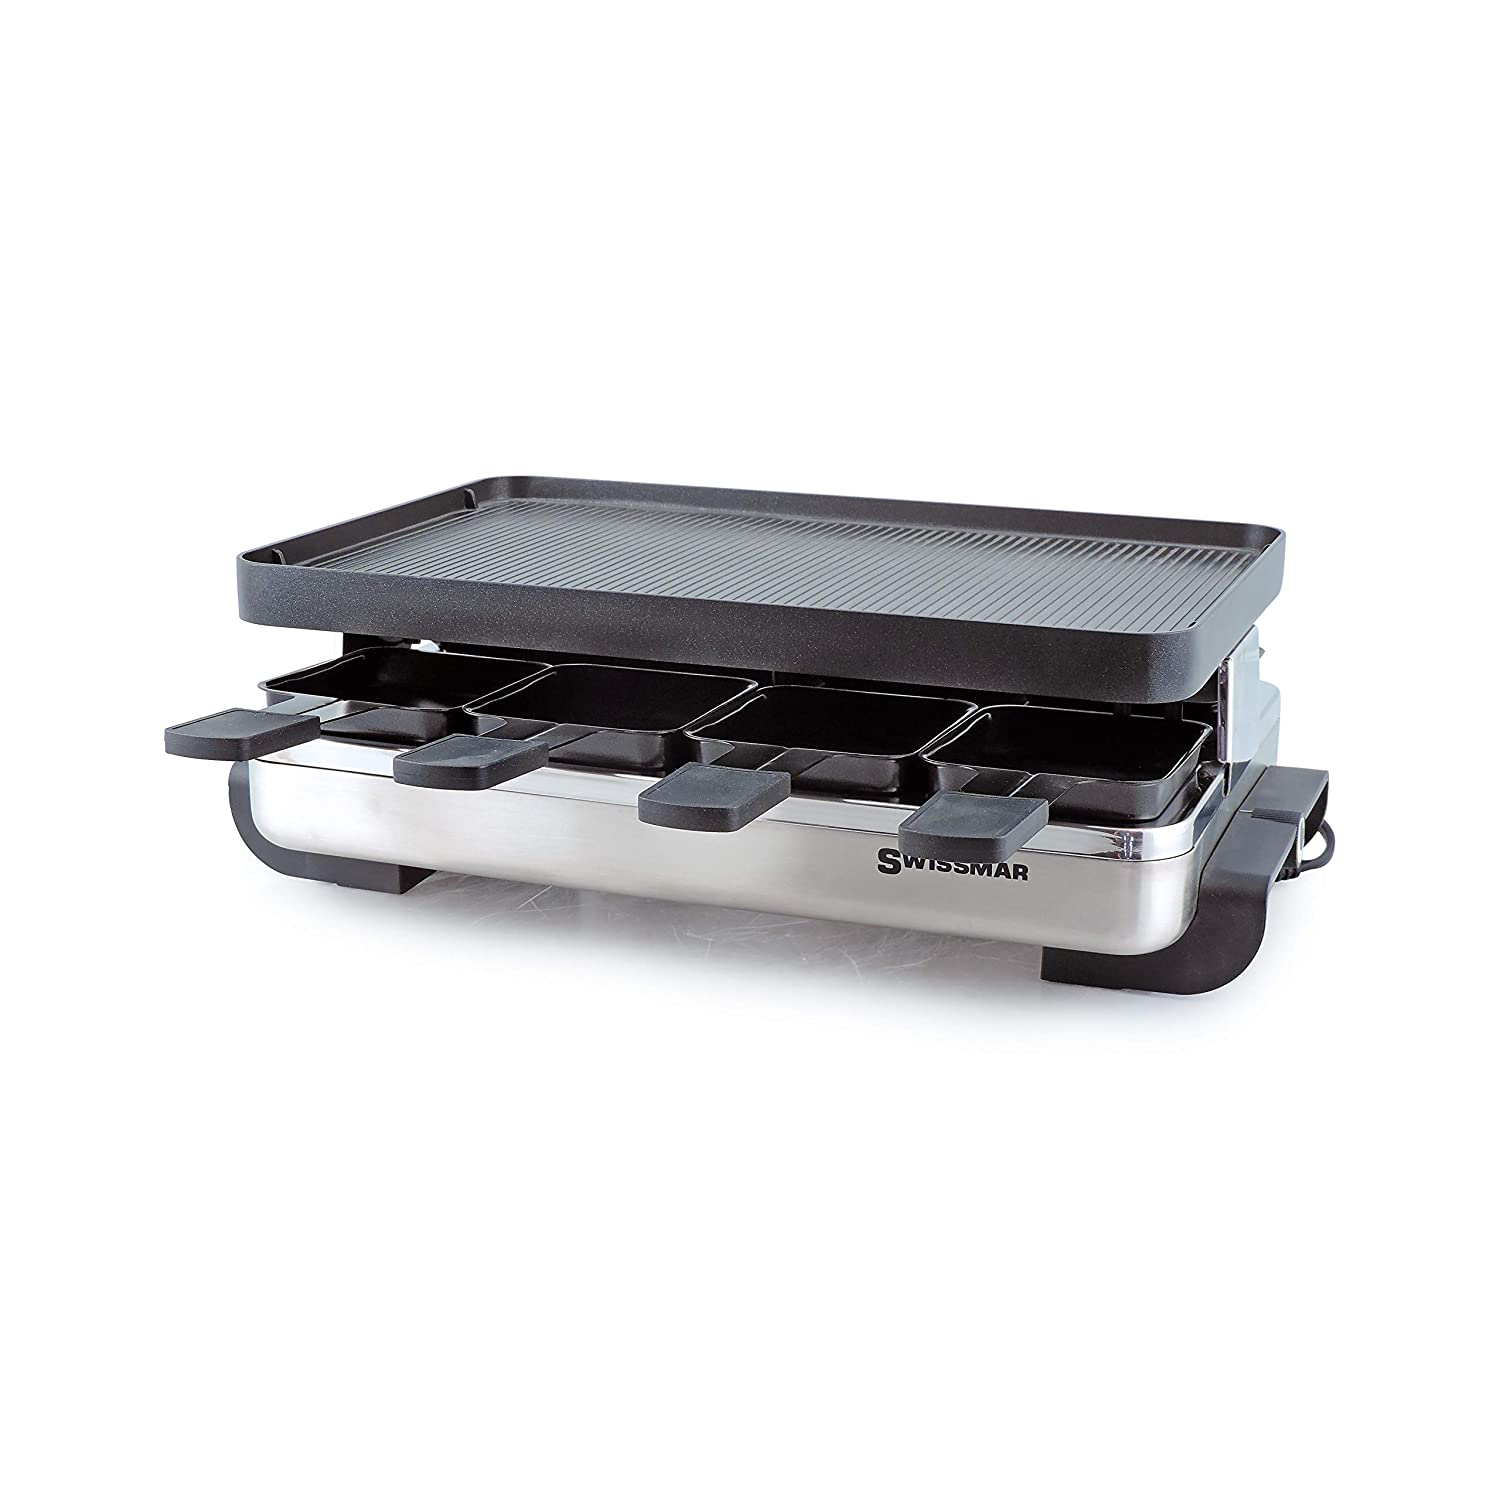 Swissmar KF-77080 Stelvio 8-Person Raclette with Reversible Cast Aluminum Non-Stick Grill Plate Crepe Top, Brushed Stainless Steel